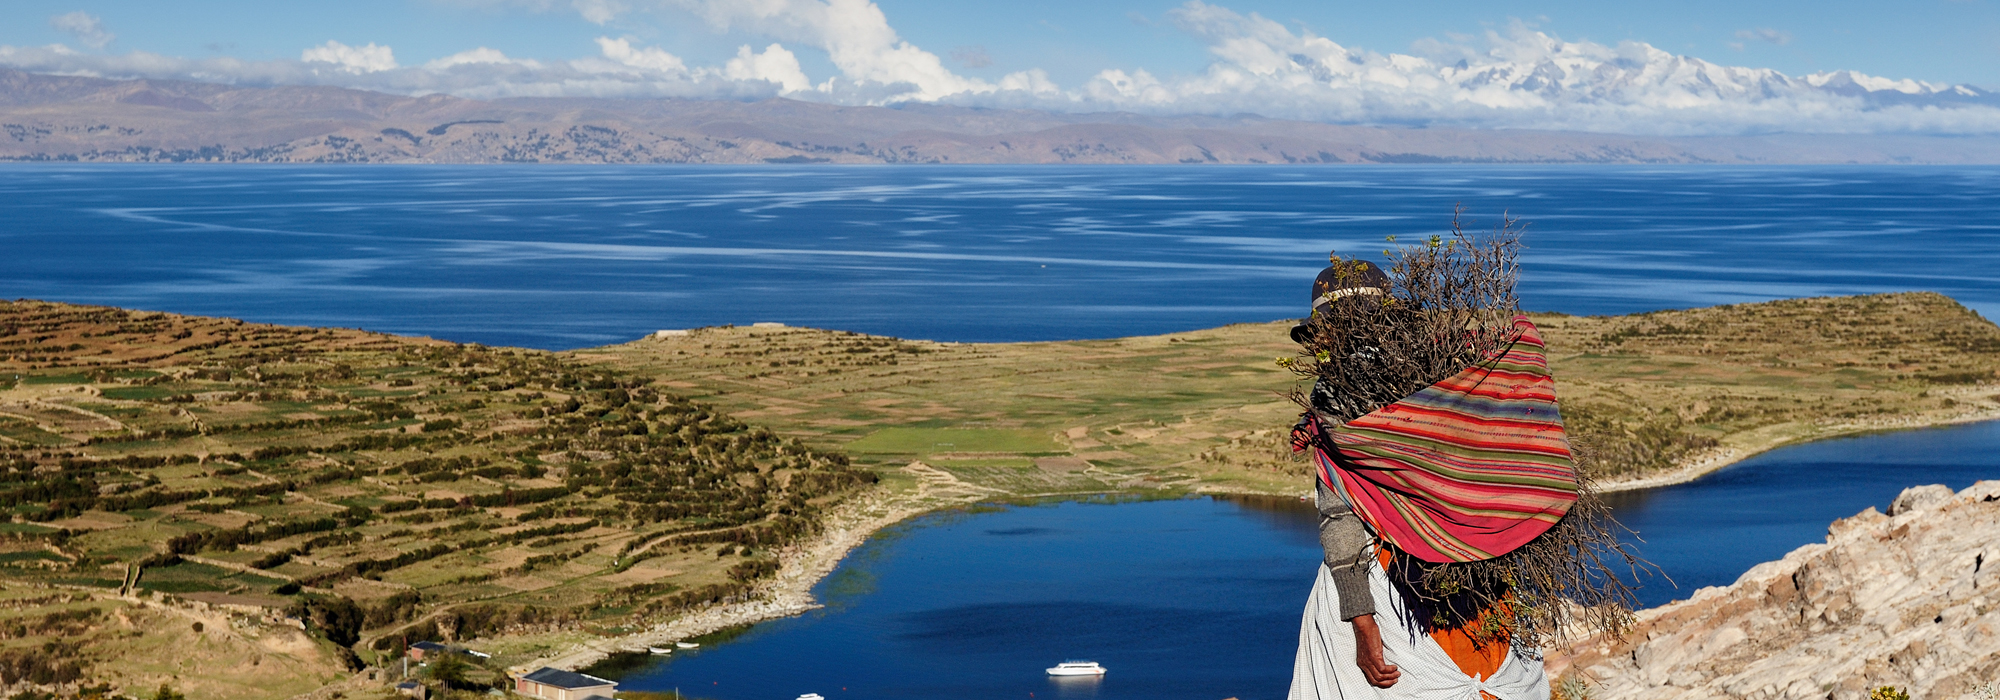 Isla del Sol on Lake Titicaca, Bolivia